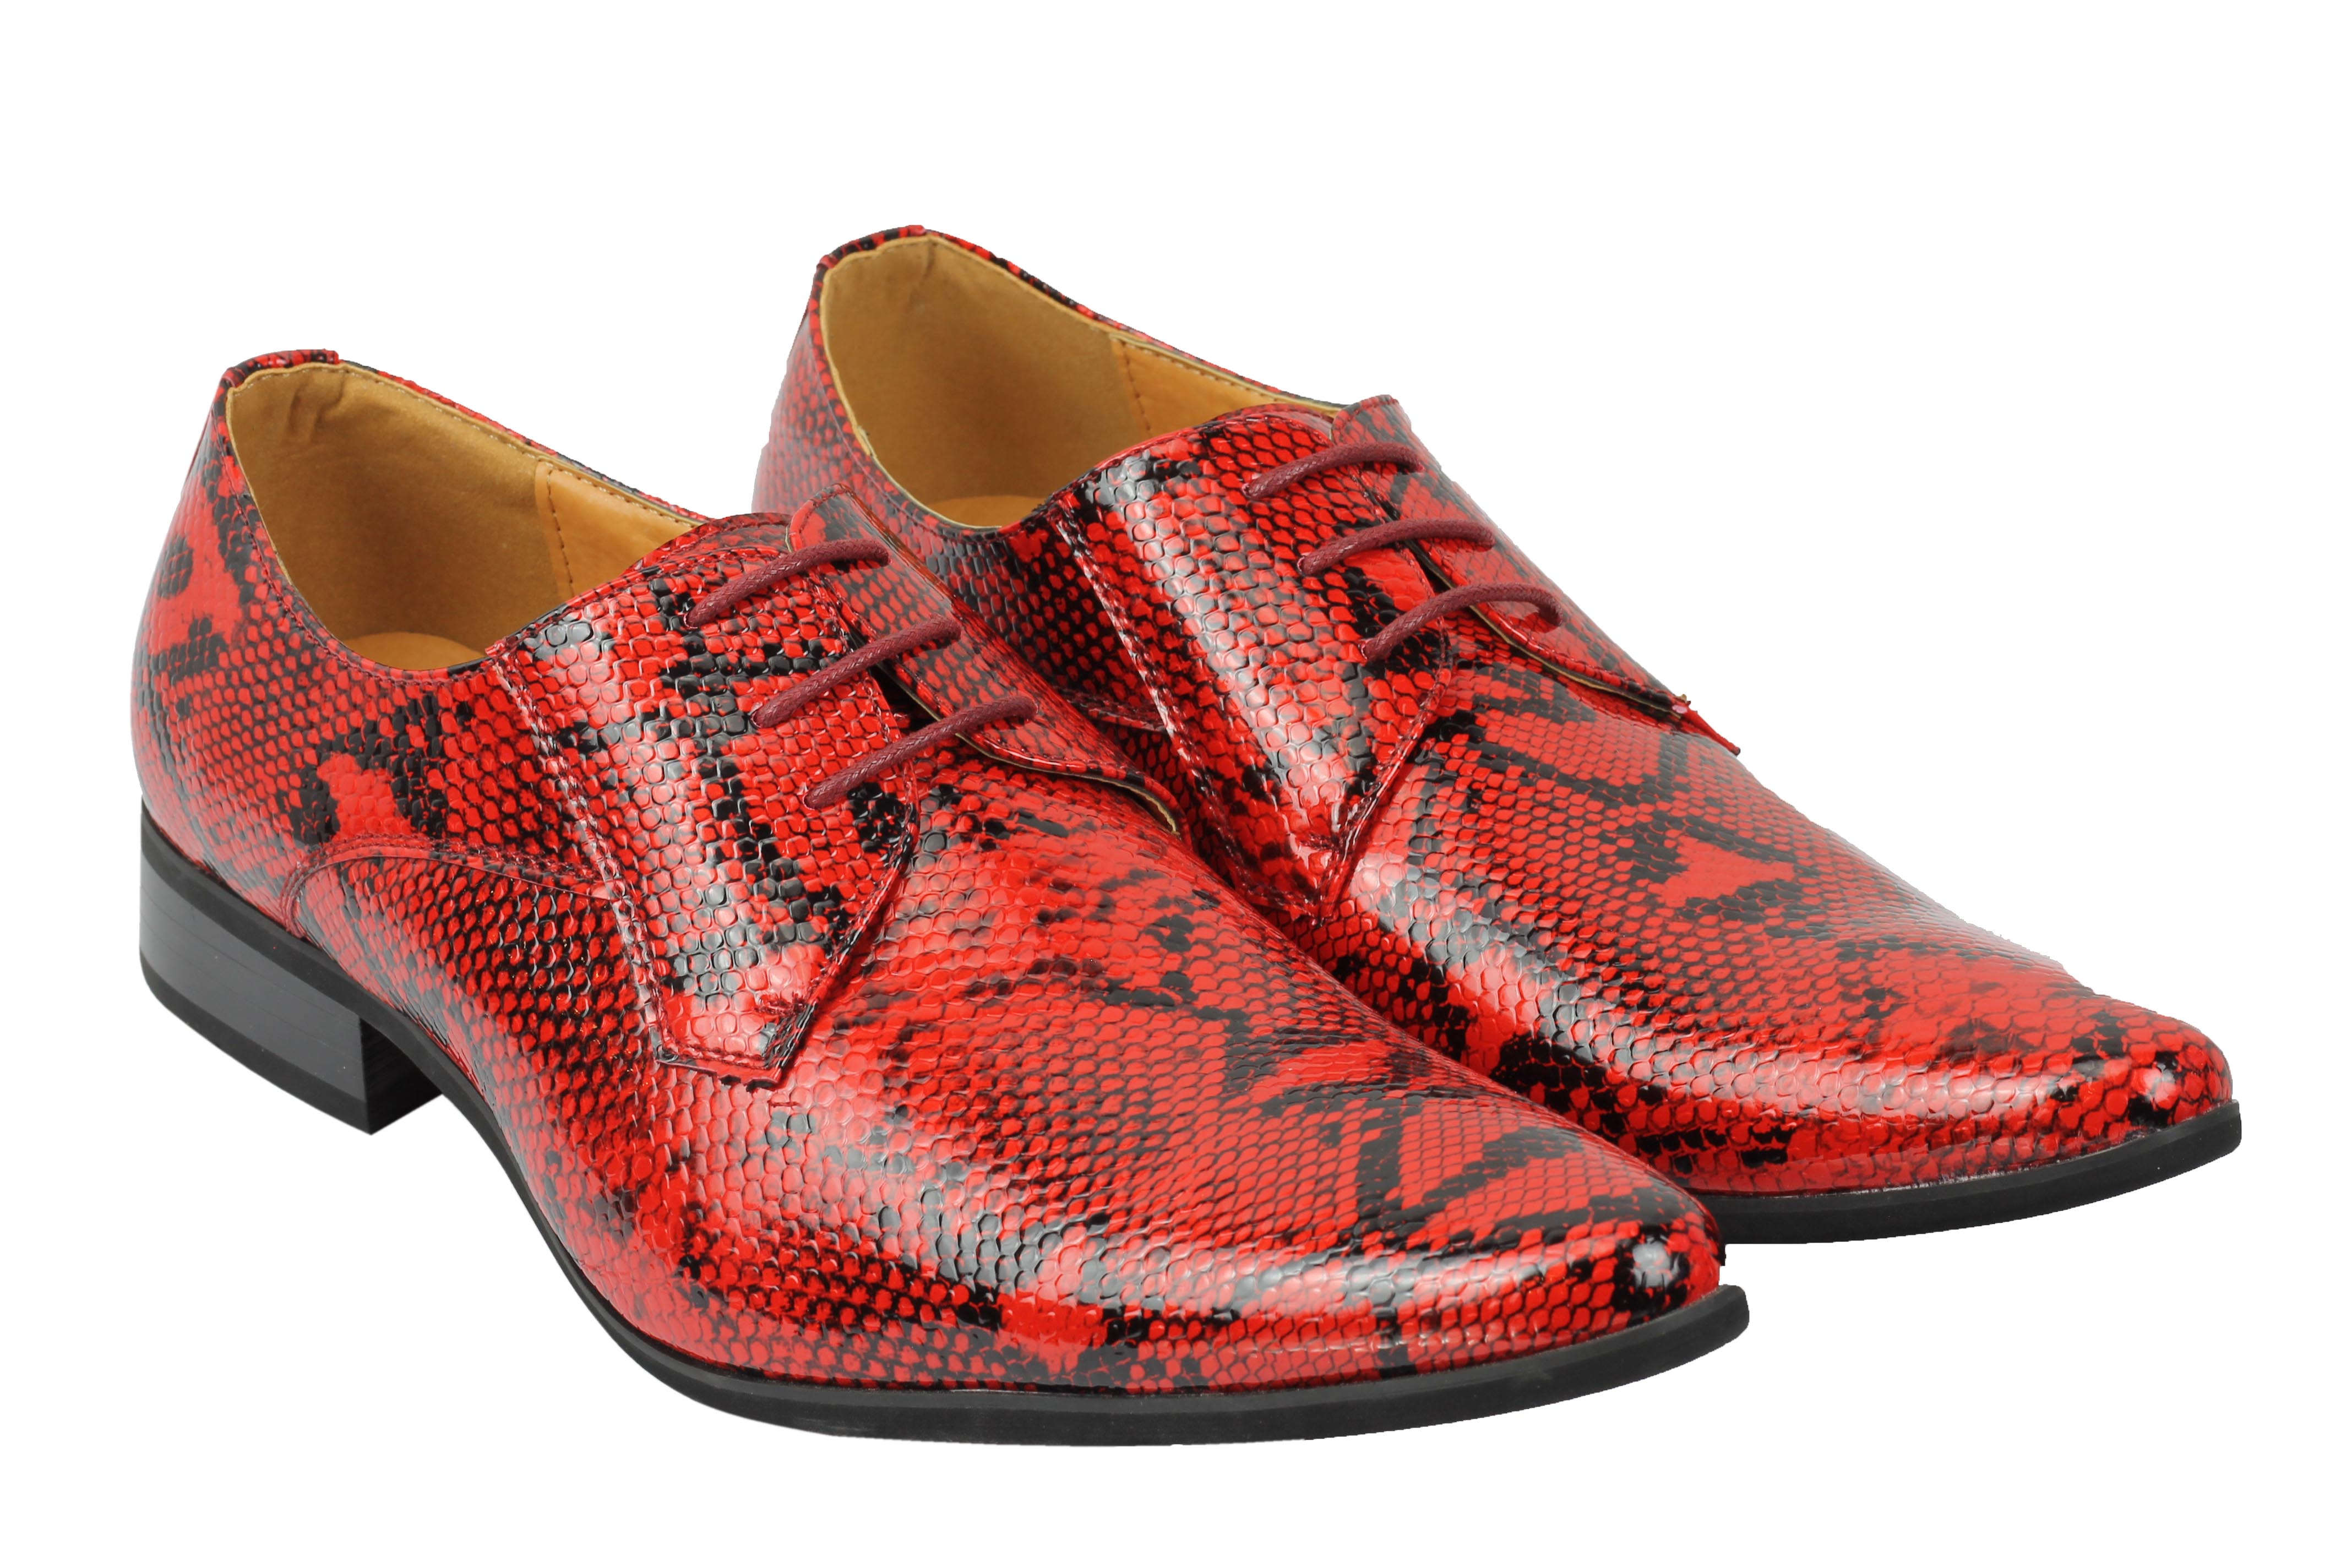 Mens-Leather-Lined-Snake-Skin-Print-Shiny-Patent-Leather-Smart-Party-Retro-Shoes thumbnail 20